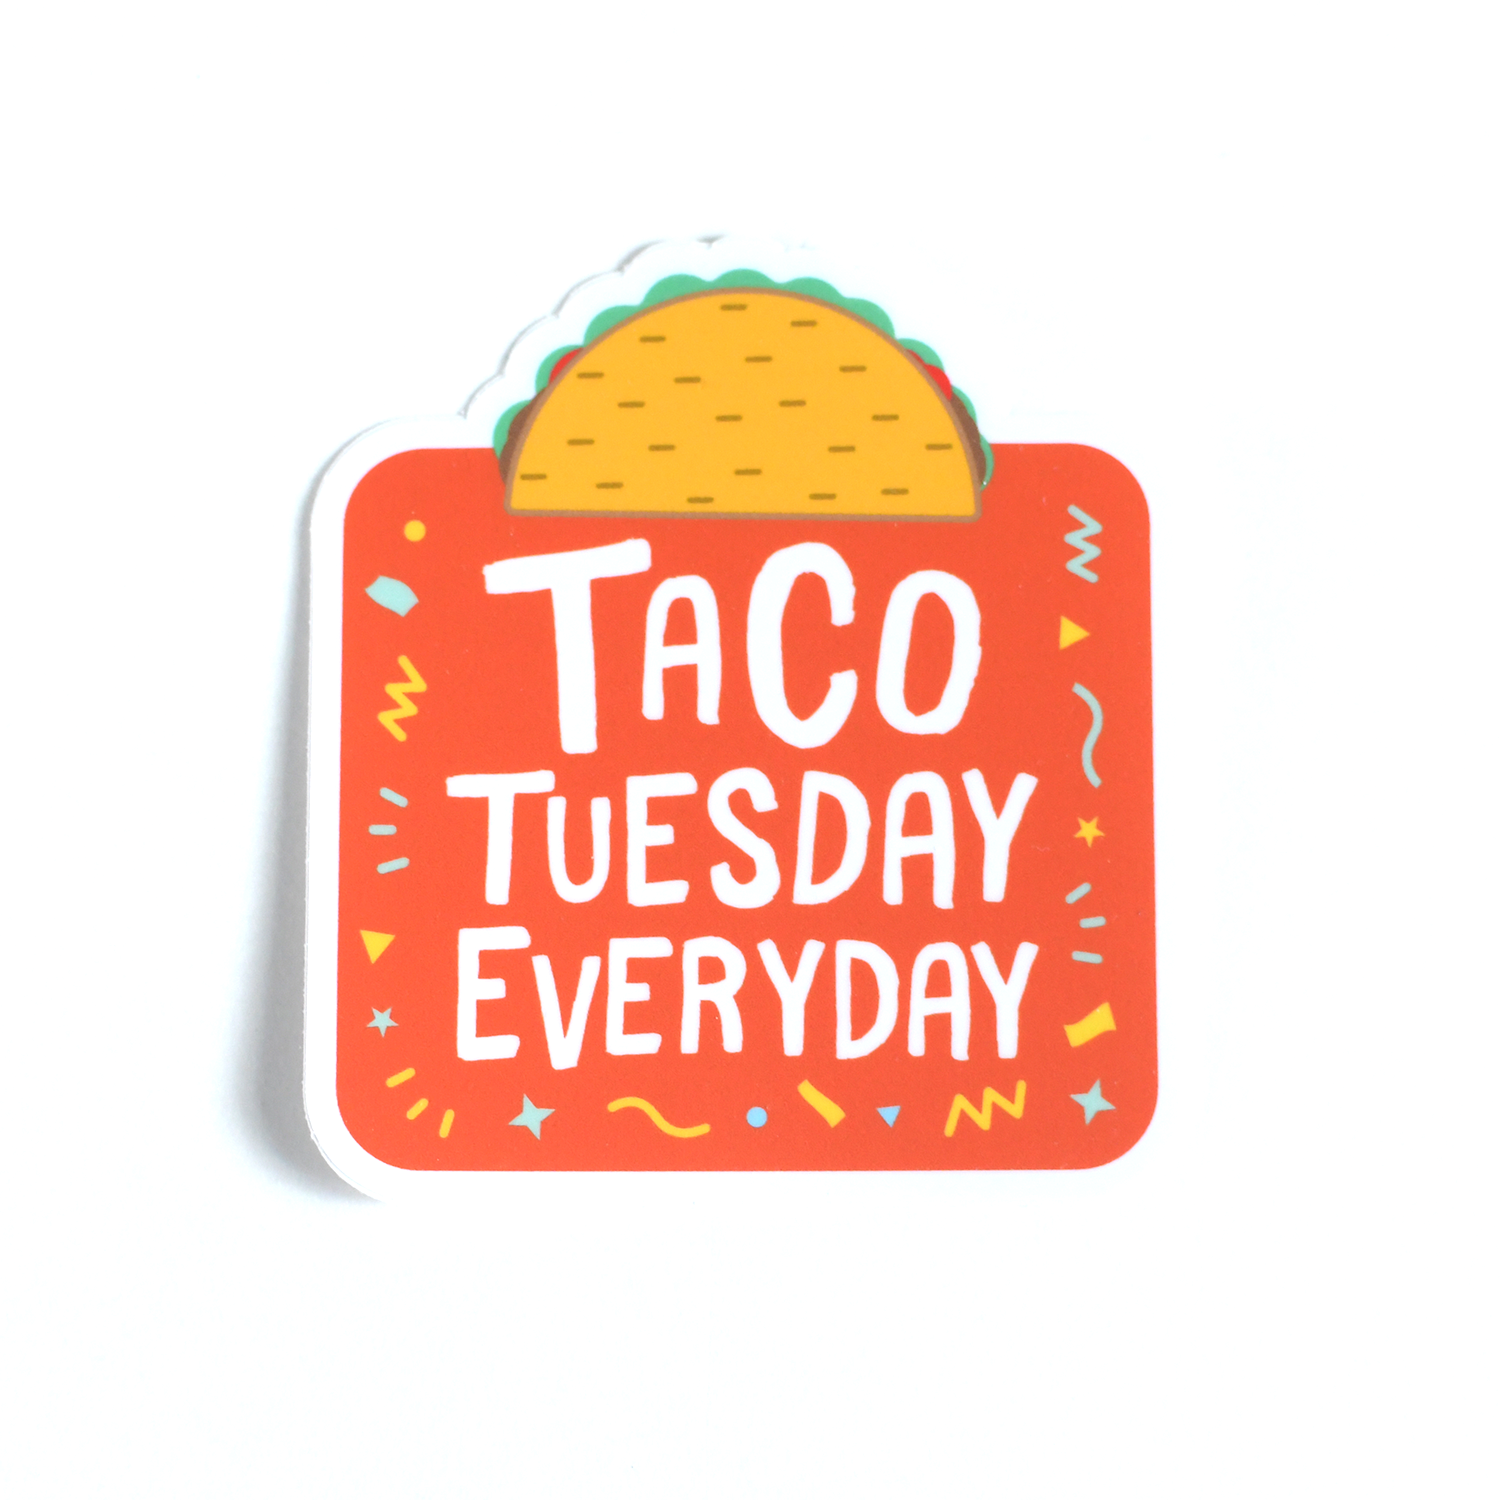 Image of Taco Tuesday Every Day Sticker